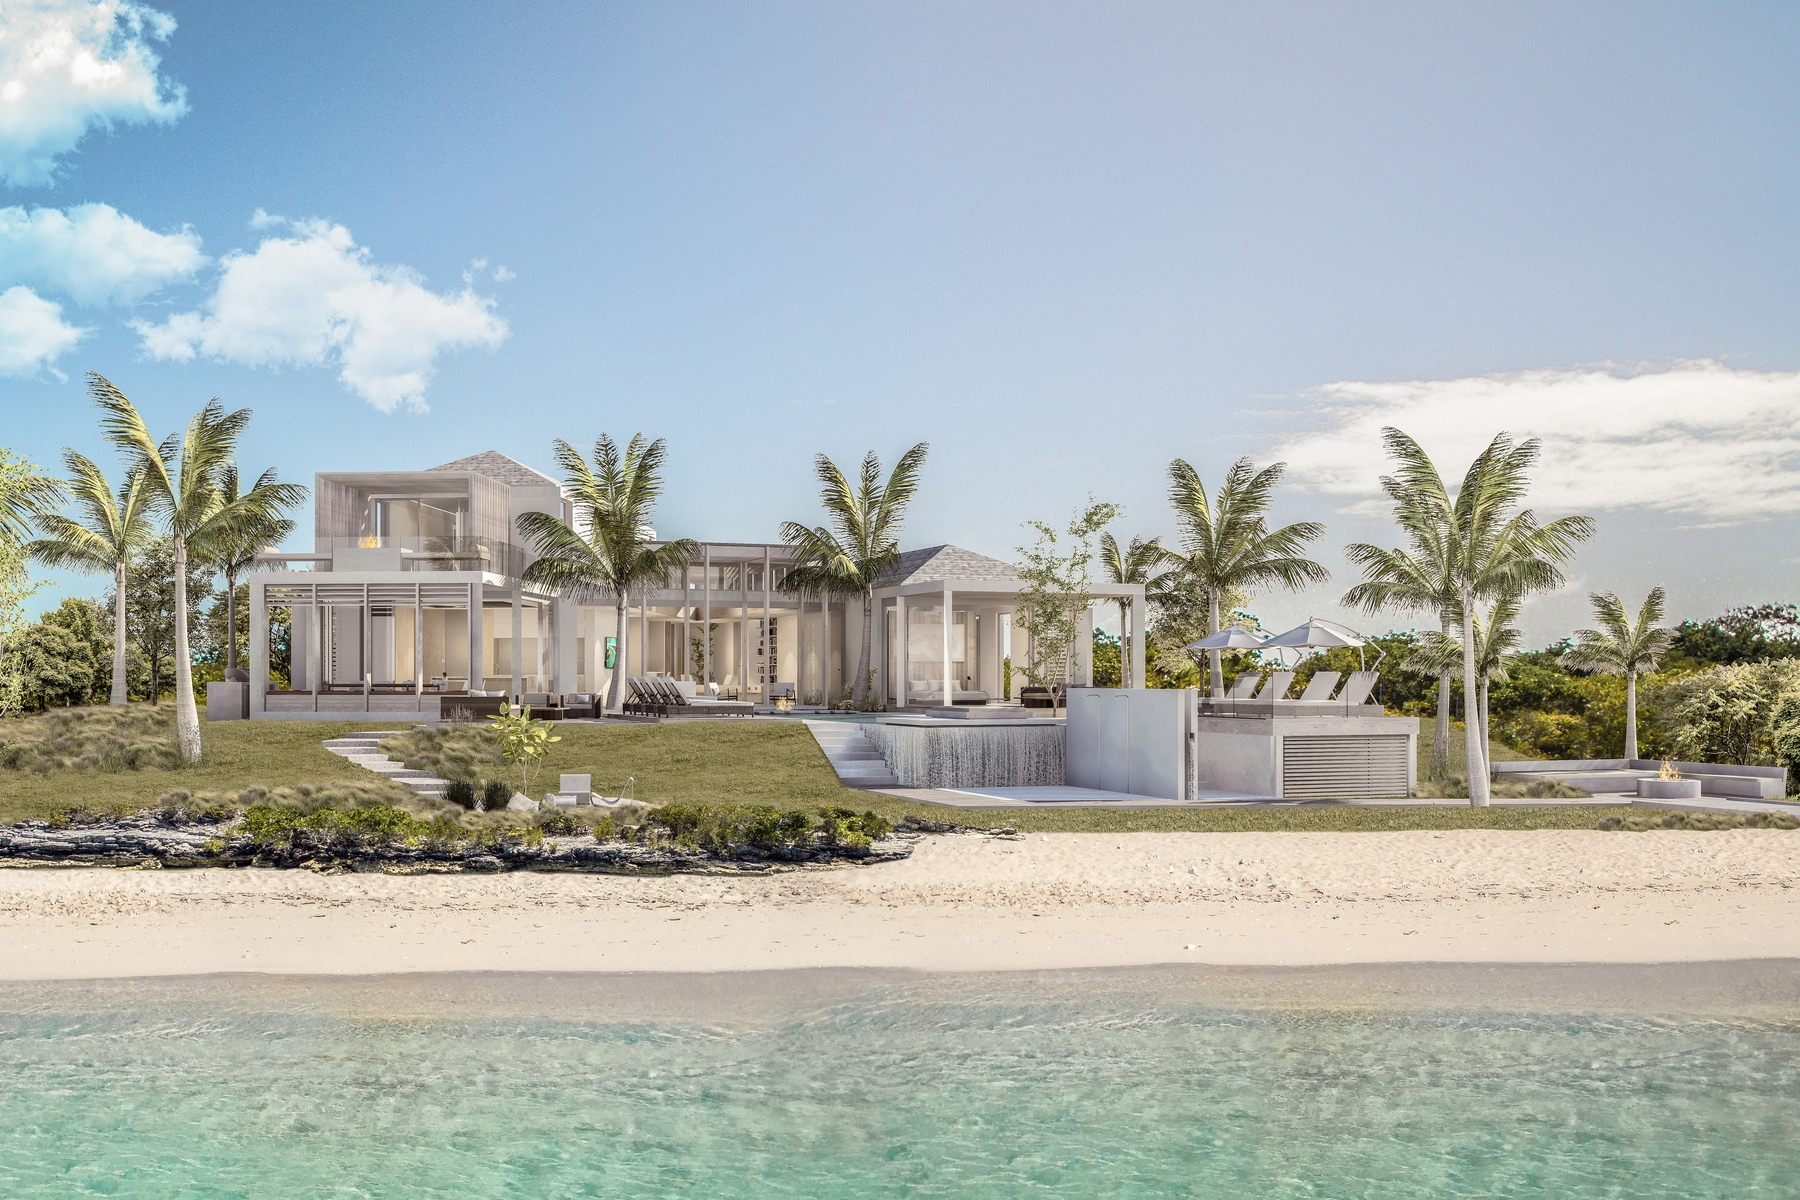 Single Family Home for Sale at Panorama Y House - Beachfront Lot 2 Leeward, Providenciales, Turks And Caicos Islands